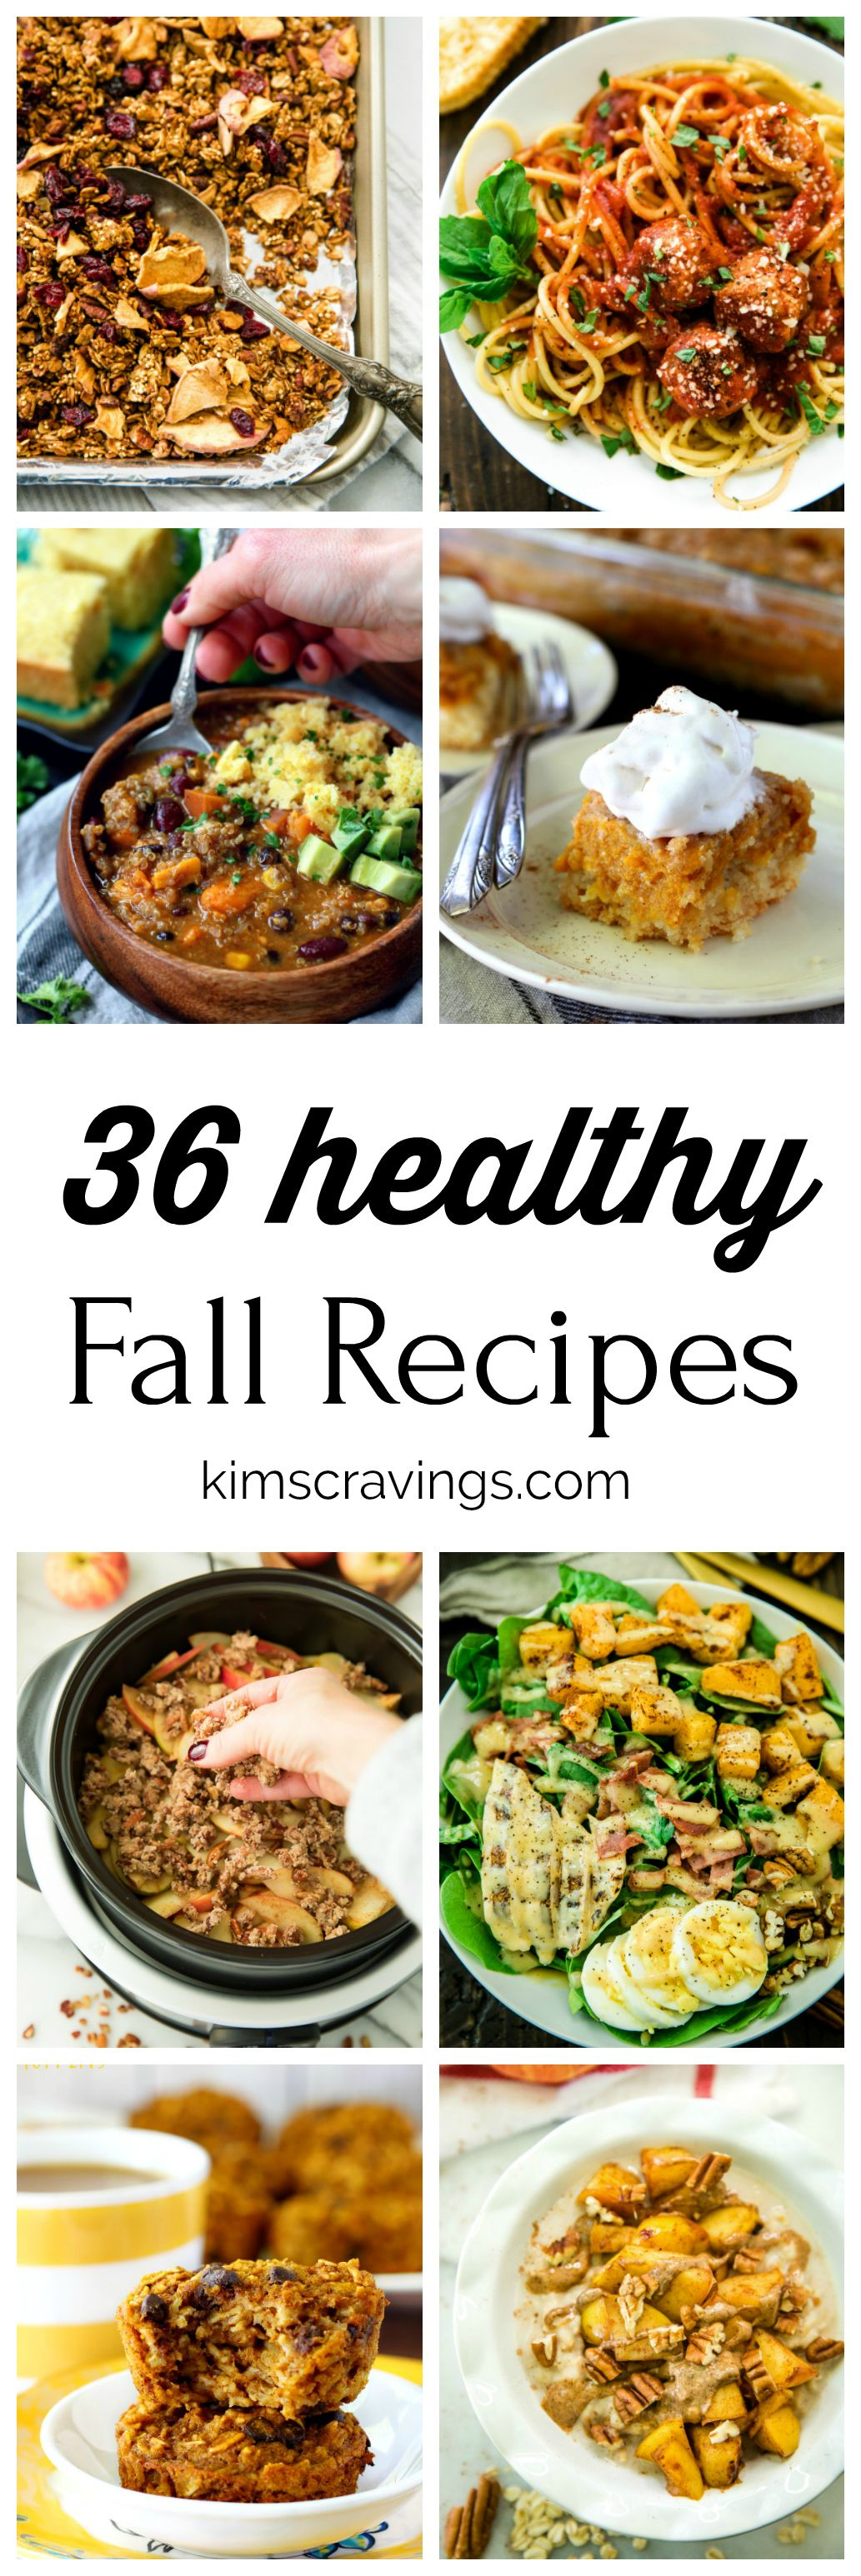 36 Healthy Fall Recipes #fallrecipesdinner